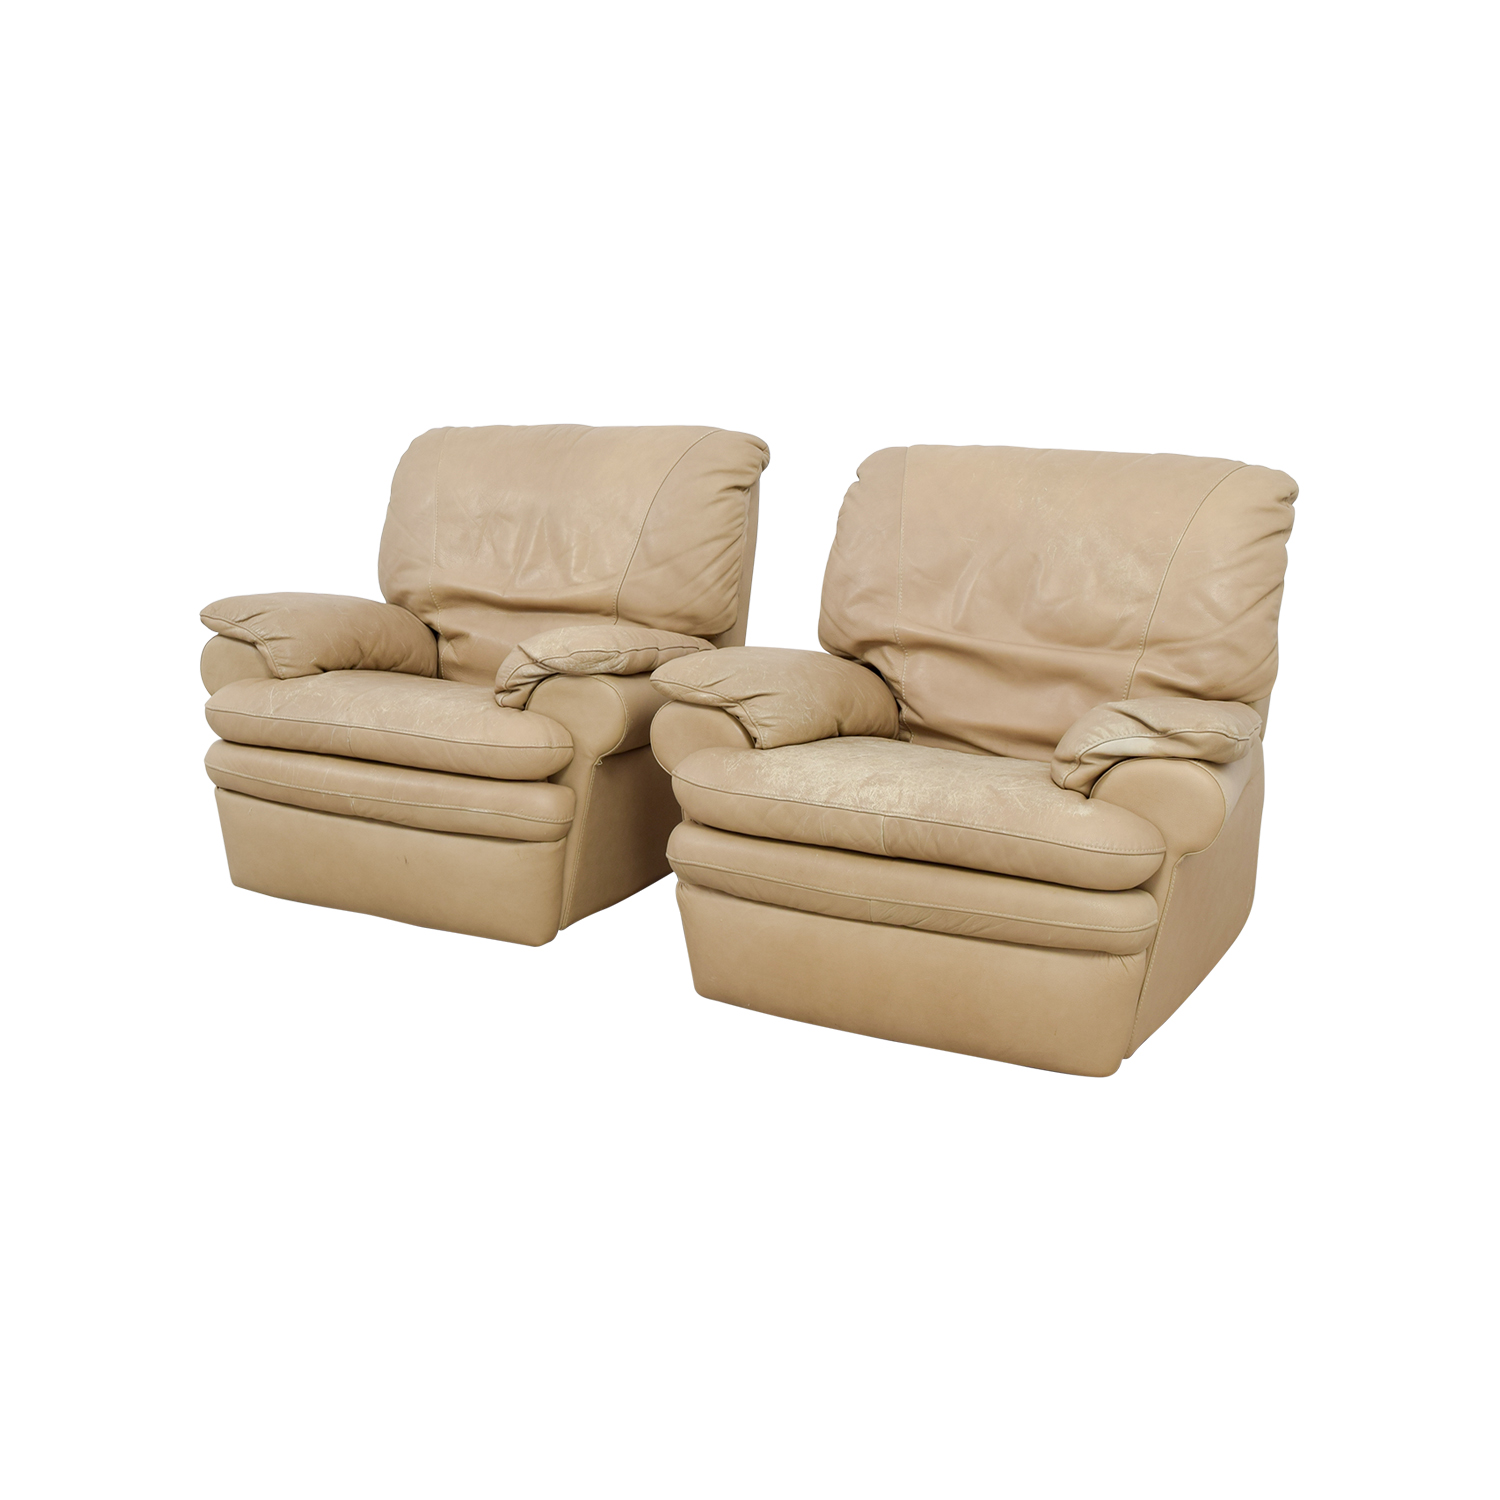 ... Natuzzi Italia Natuzzi Italian Beige Leather Recliners Recliners ...  sc 1 st  Furnishare : beige leather recliner - islam-shia.org